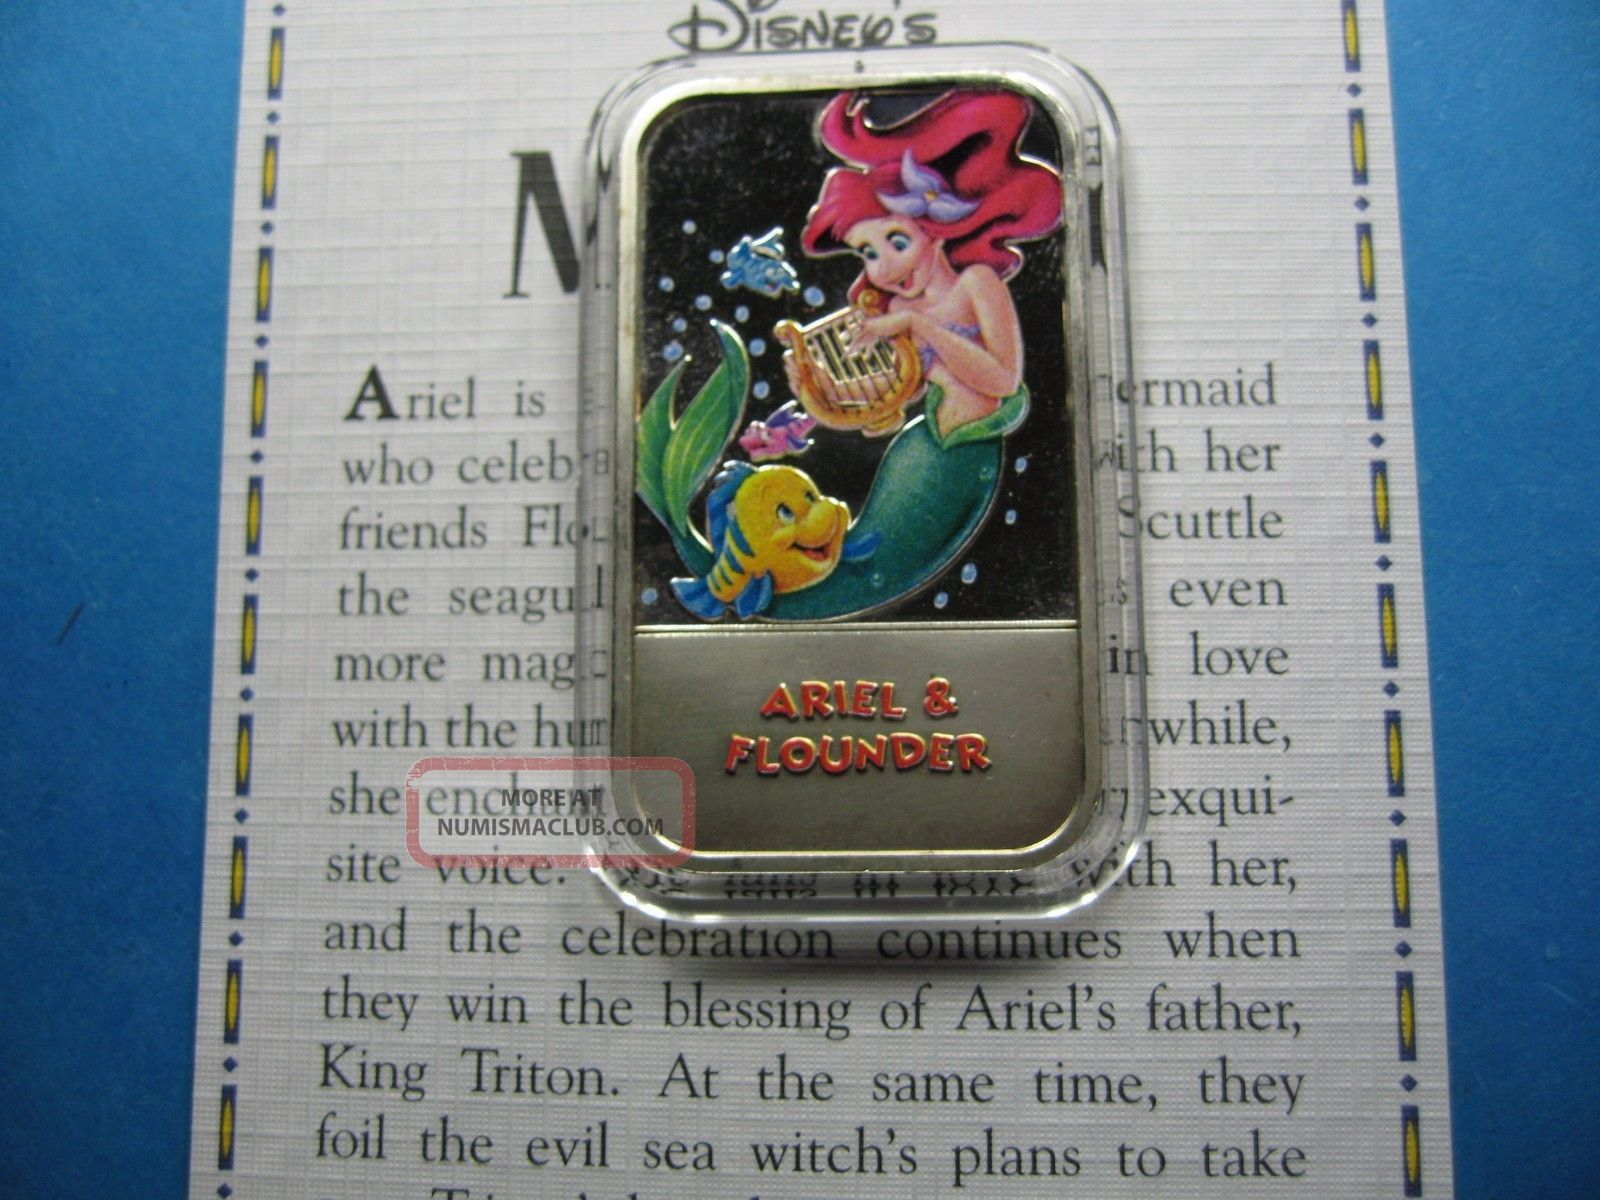 Ariel & Flounder Little Mermaid Disney Enamel Usps Rare Sharp 999 Silver Bar D Silver photo